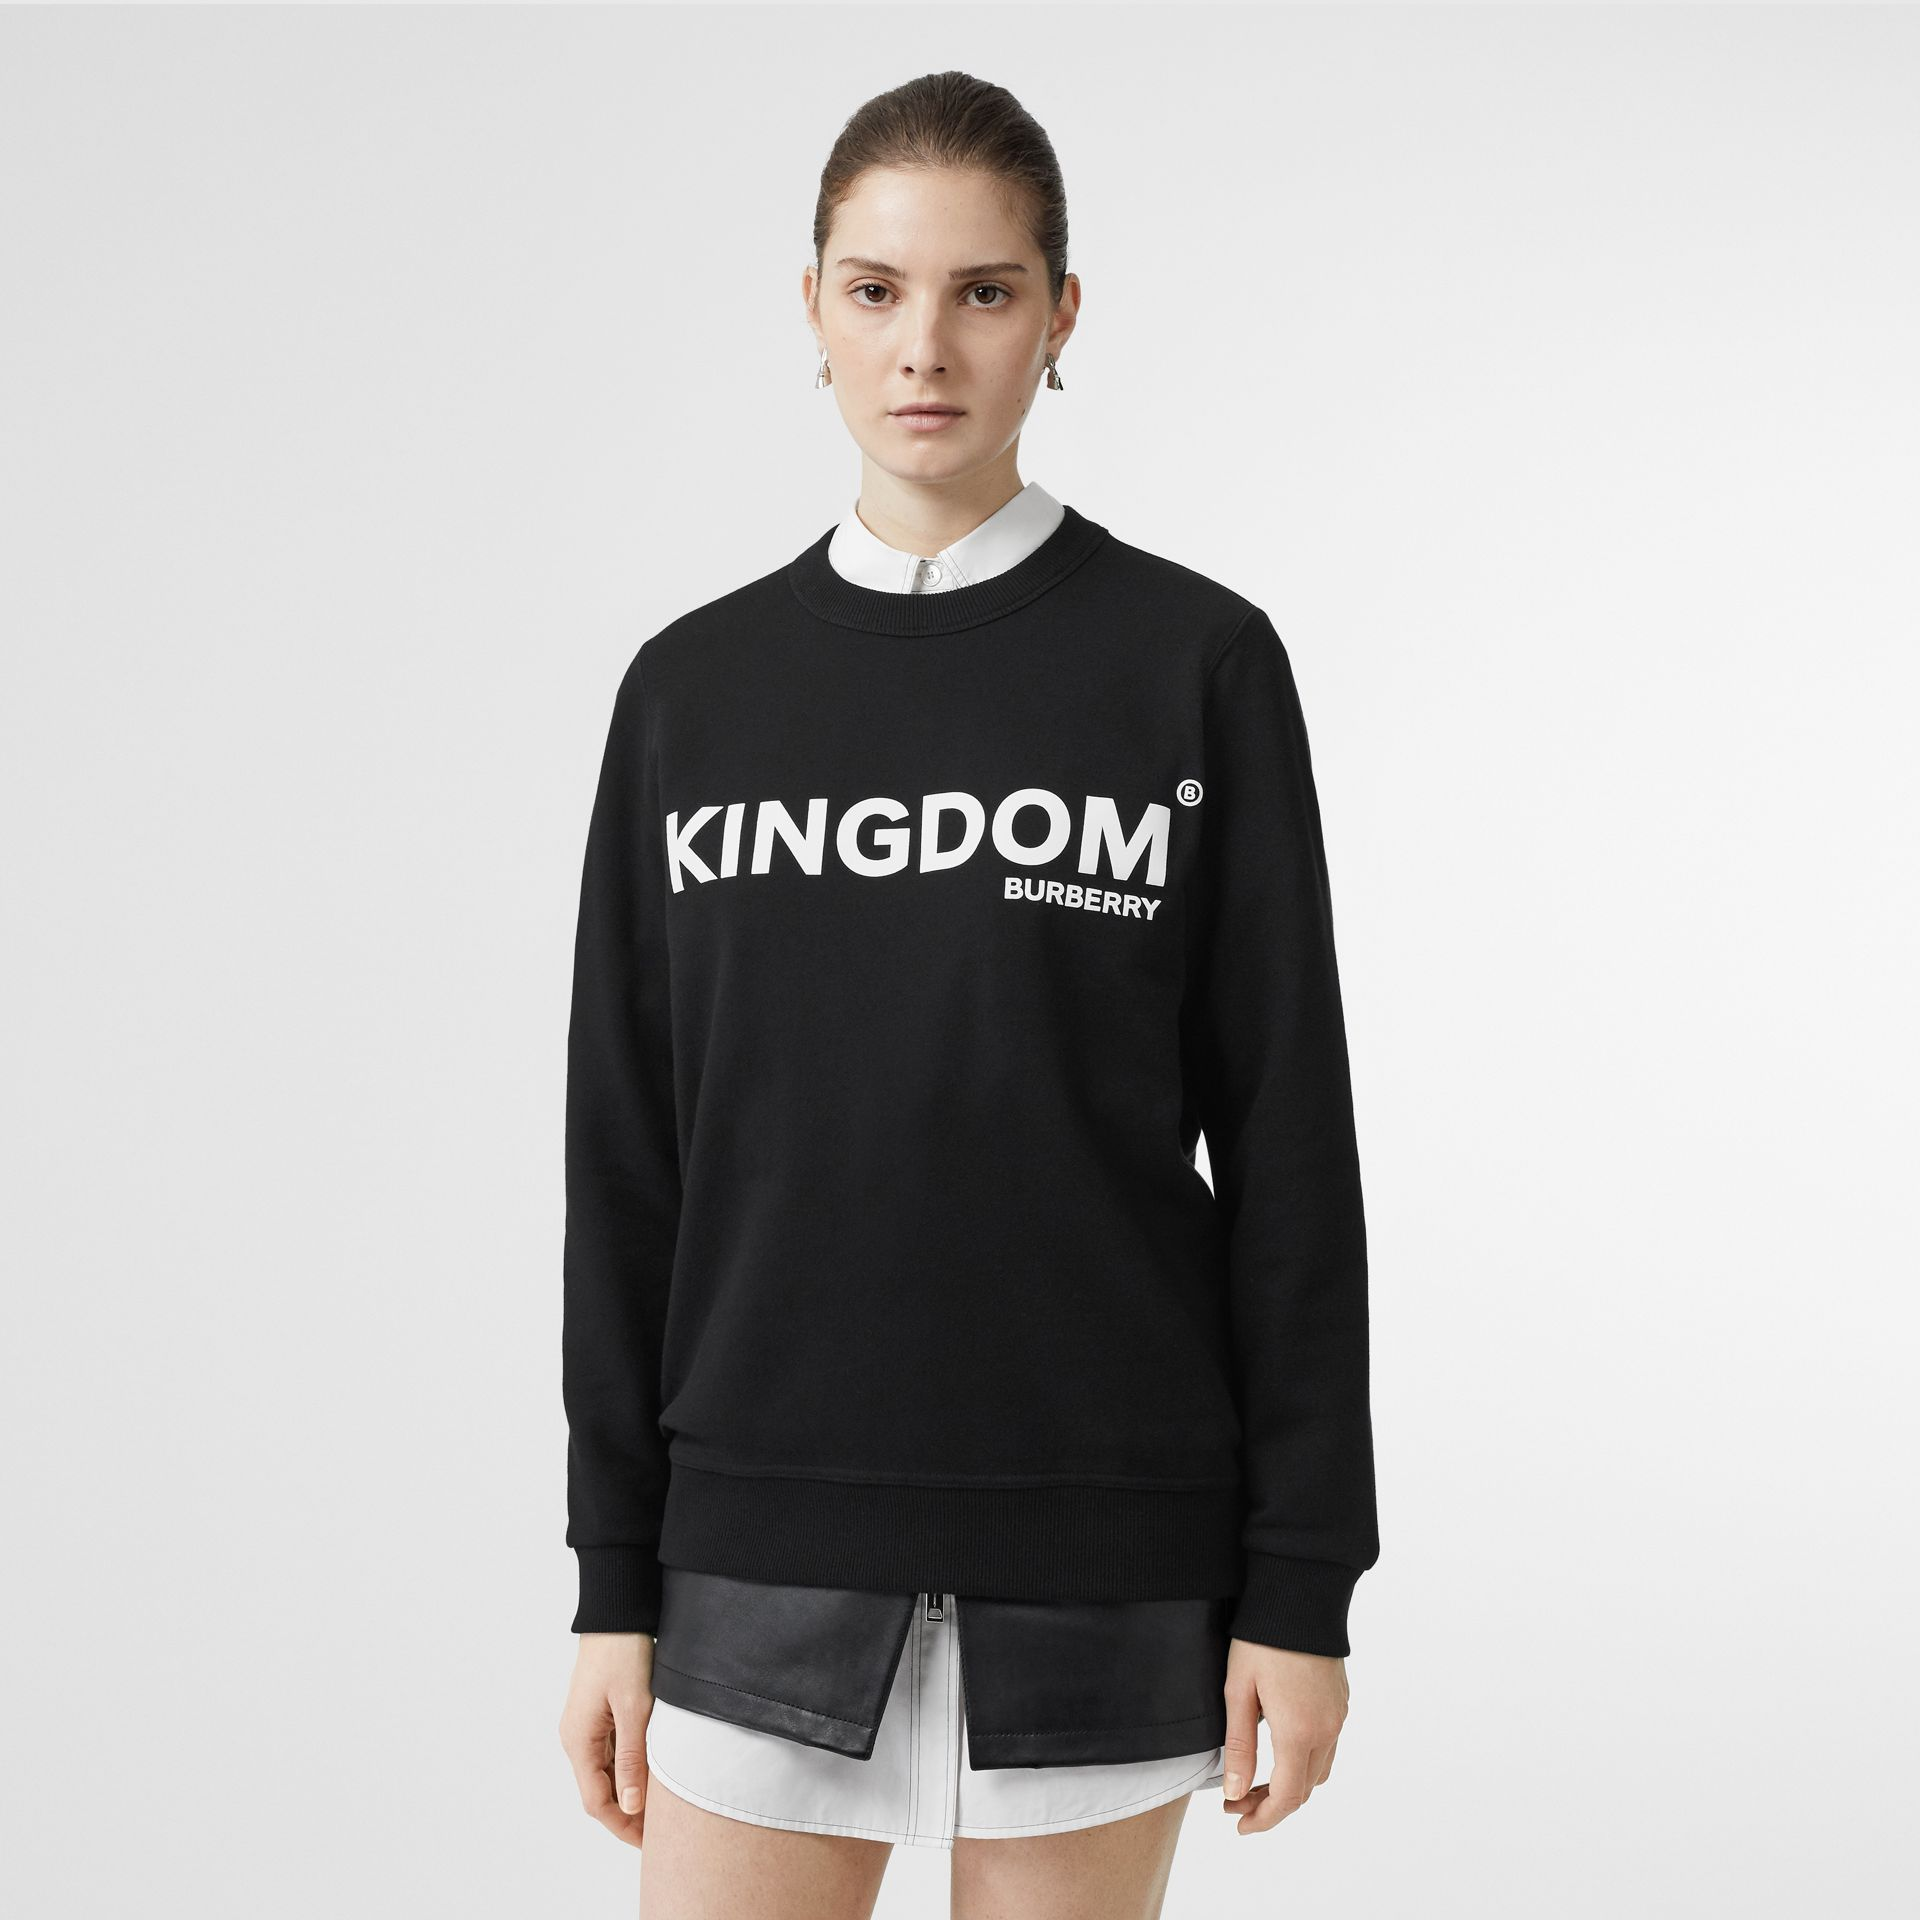 Kingdom Print Cotton Sweatshirt in Black - Women | Burberry Hong Kong - gallery image 4